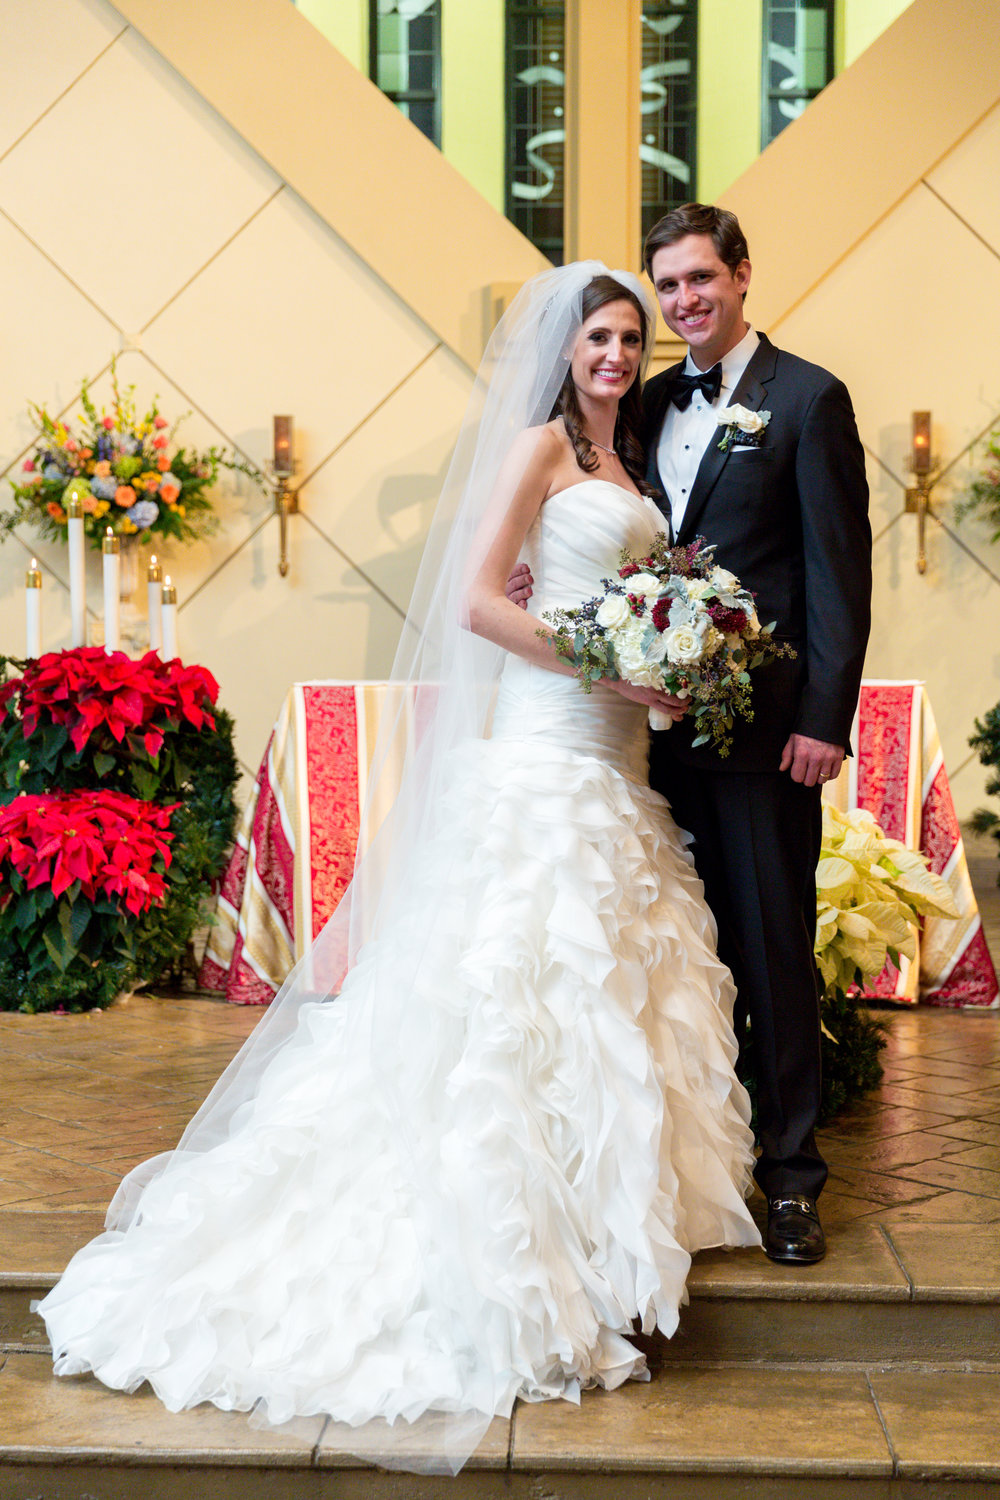 See how this timeless wedding moments were captured... Meet the Hendersons!